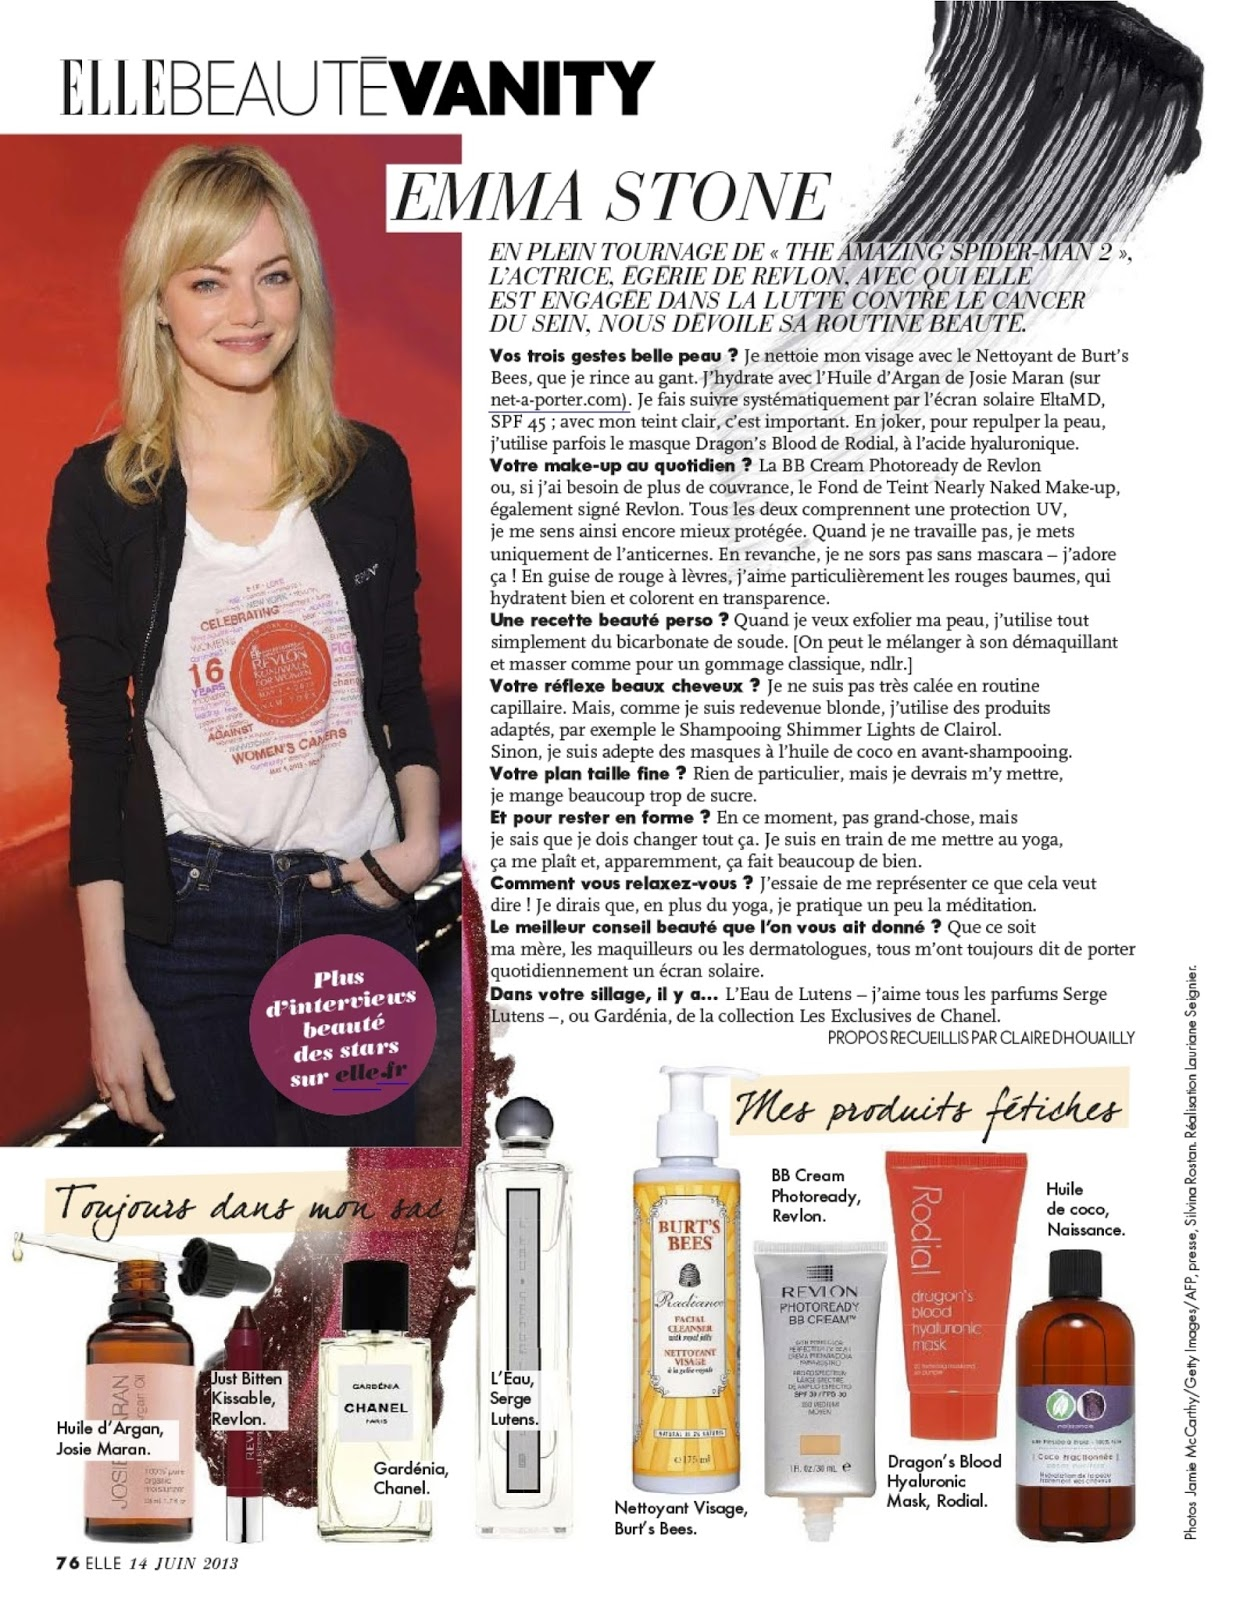 emma stone's beauty tips